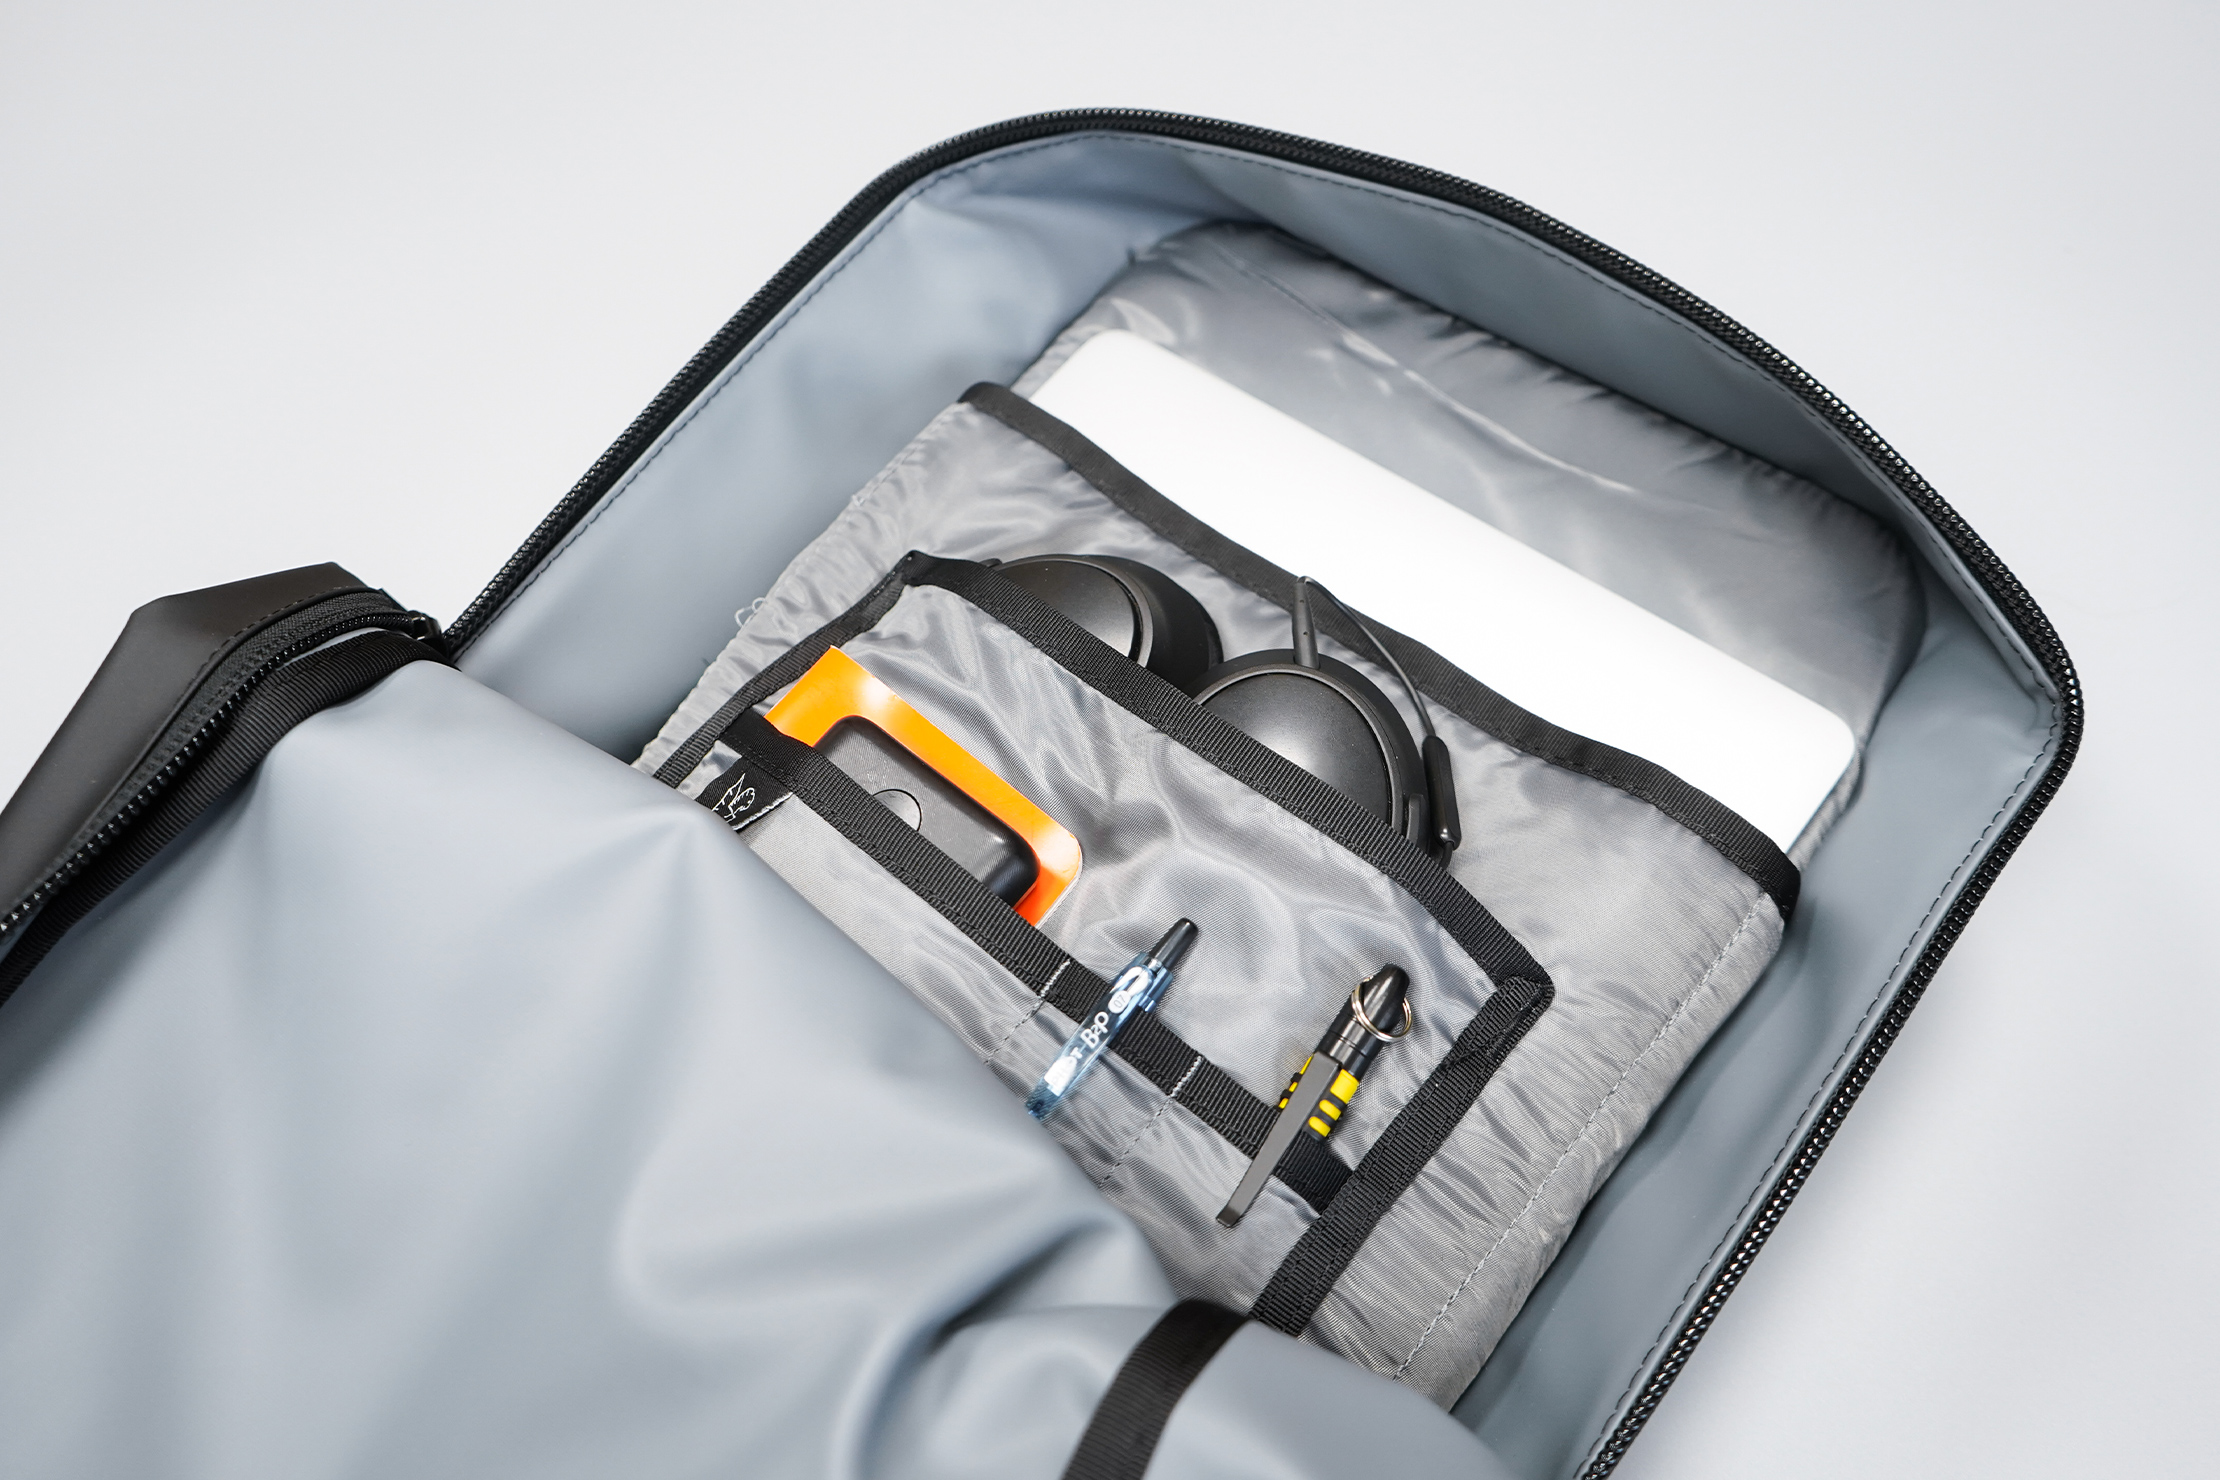 Chrome Industries Hondo Backpack Main Compartment